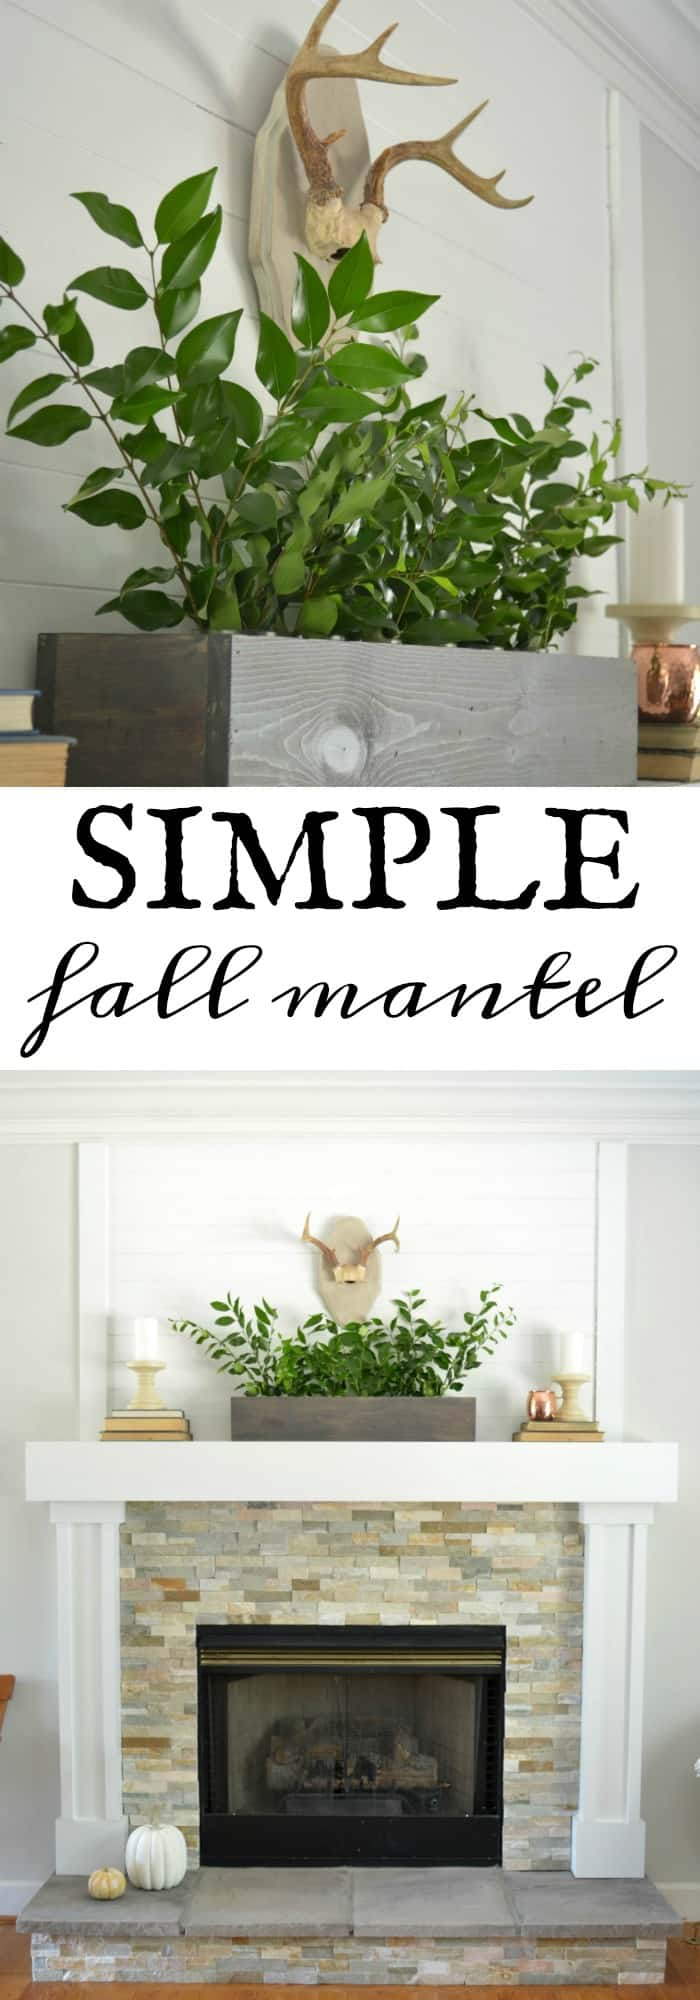 Simple Fall Mantel Styling using what you have around your house.